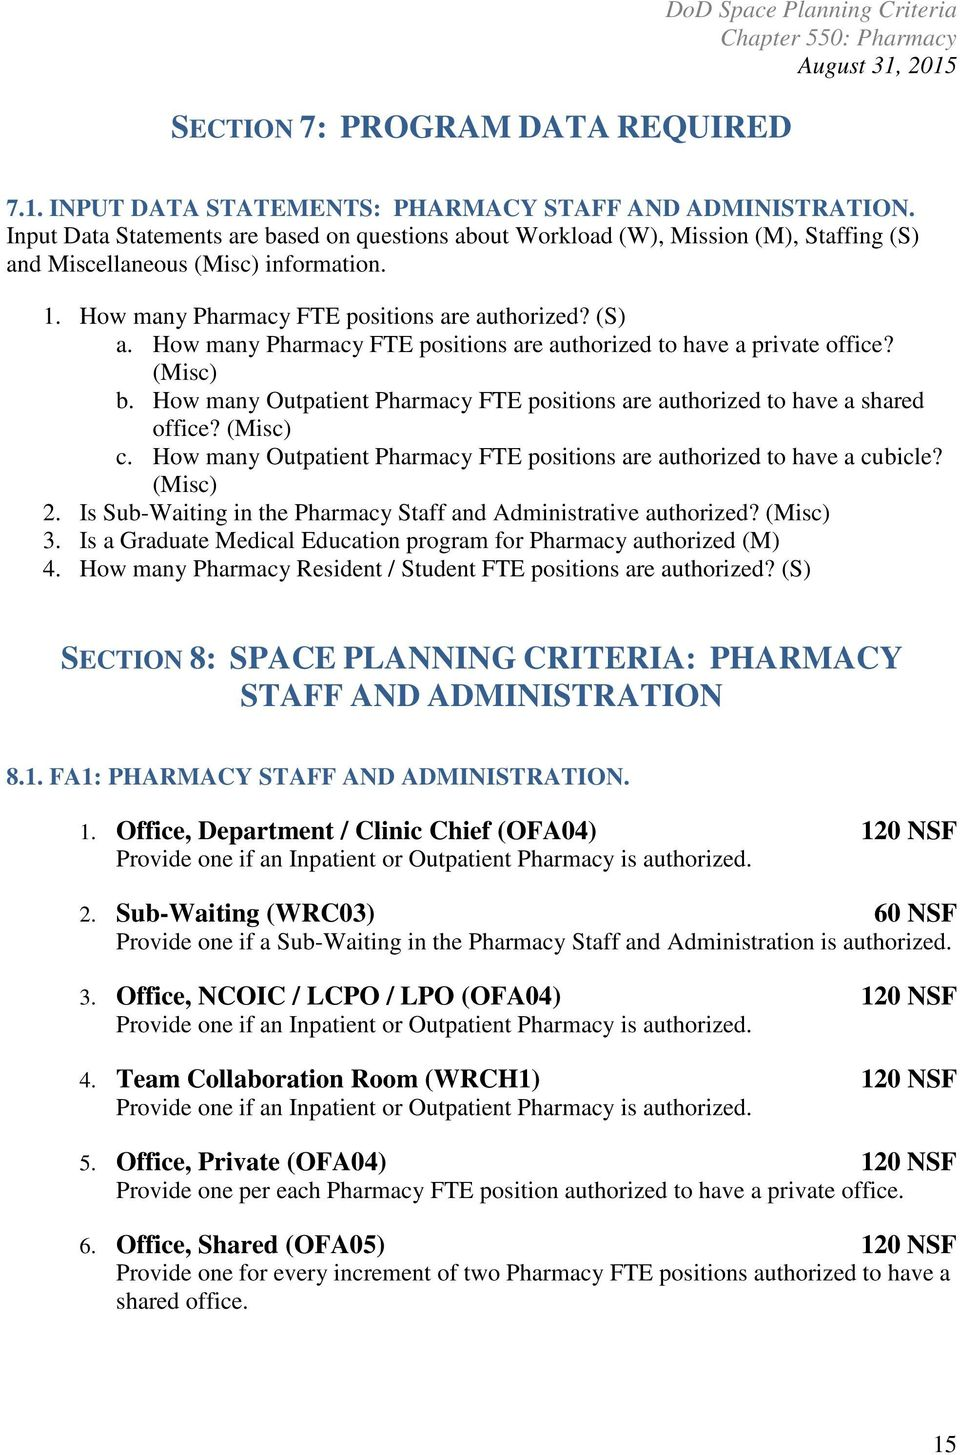 How Many Outpatient Pharmacy FTE Positions Are Authorized To Have A